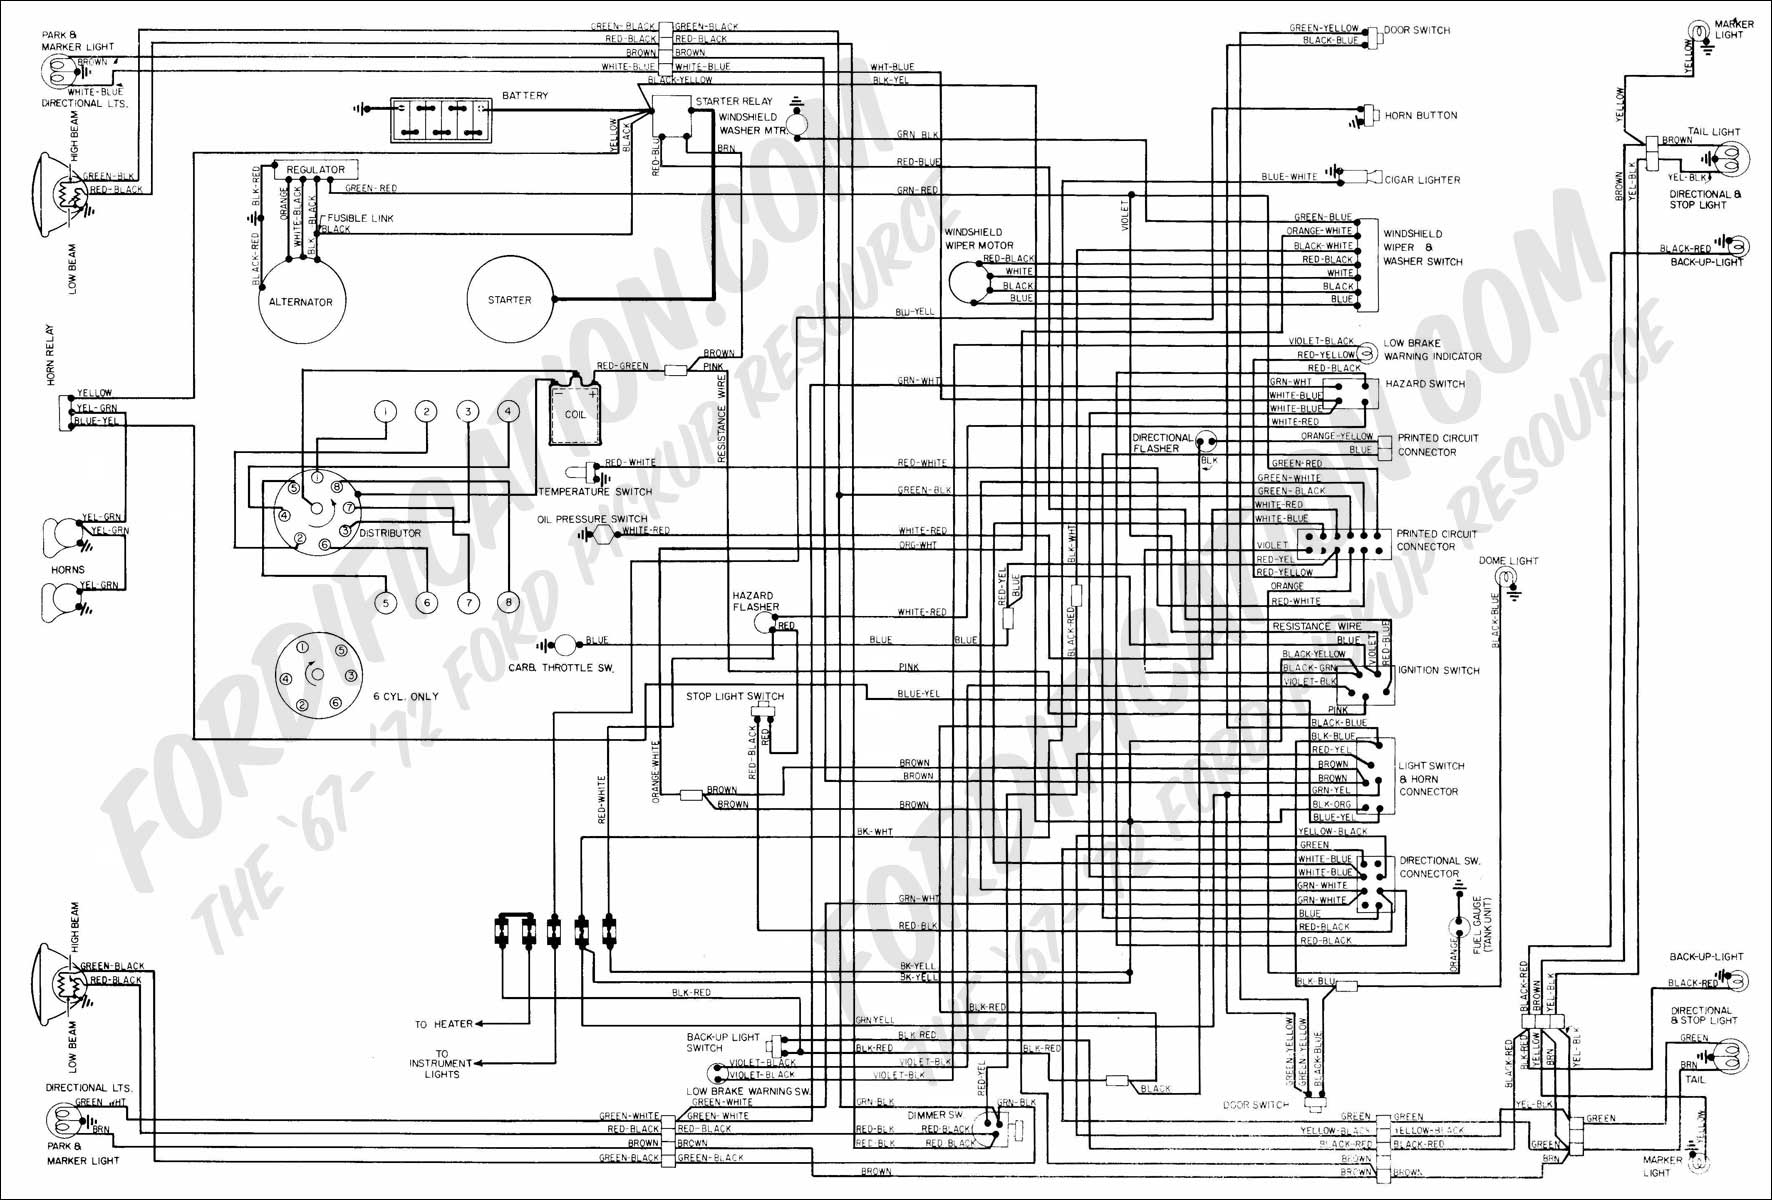 ford fusion aftermarket stereo wiring diagram 2007 ford fusion wiring diagram wiring diagram and schematic design radio wiring diagram ford fusion diagrams